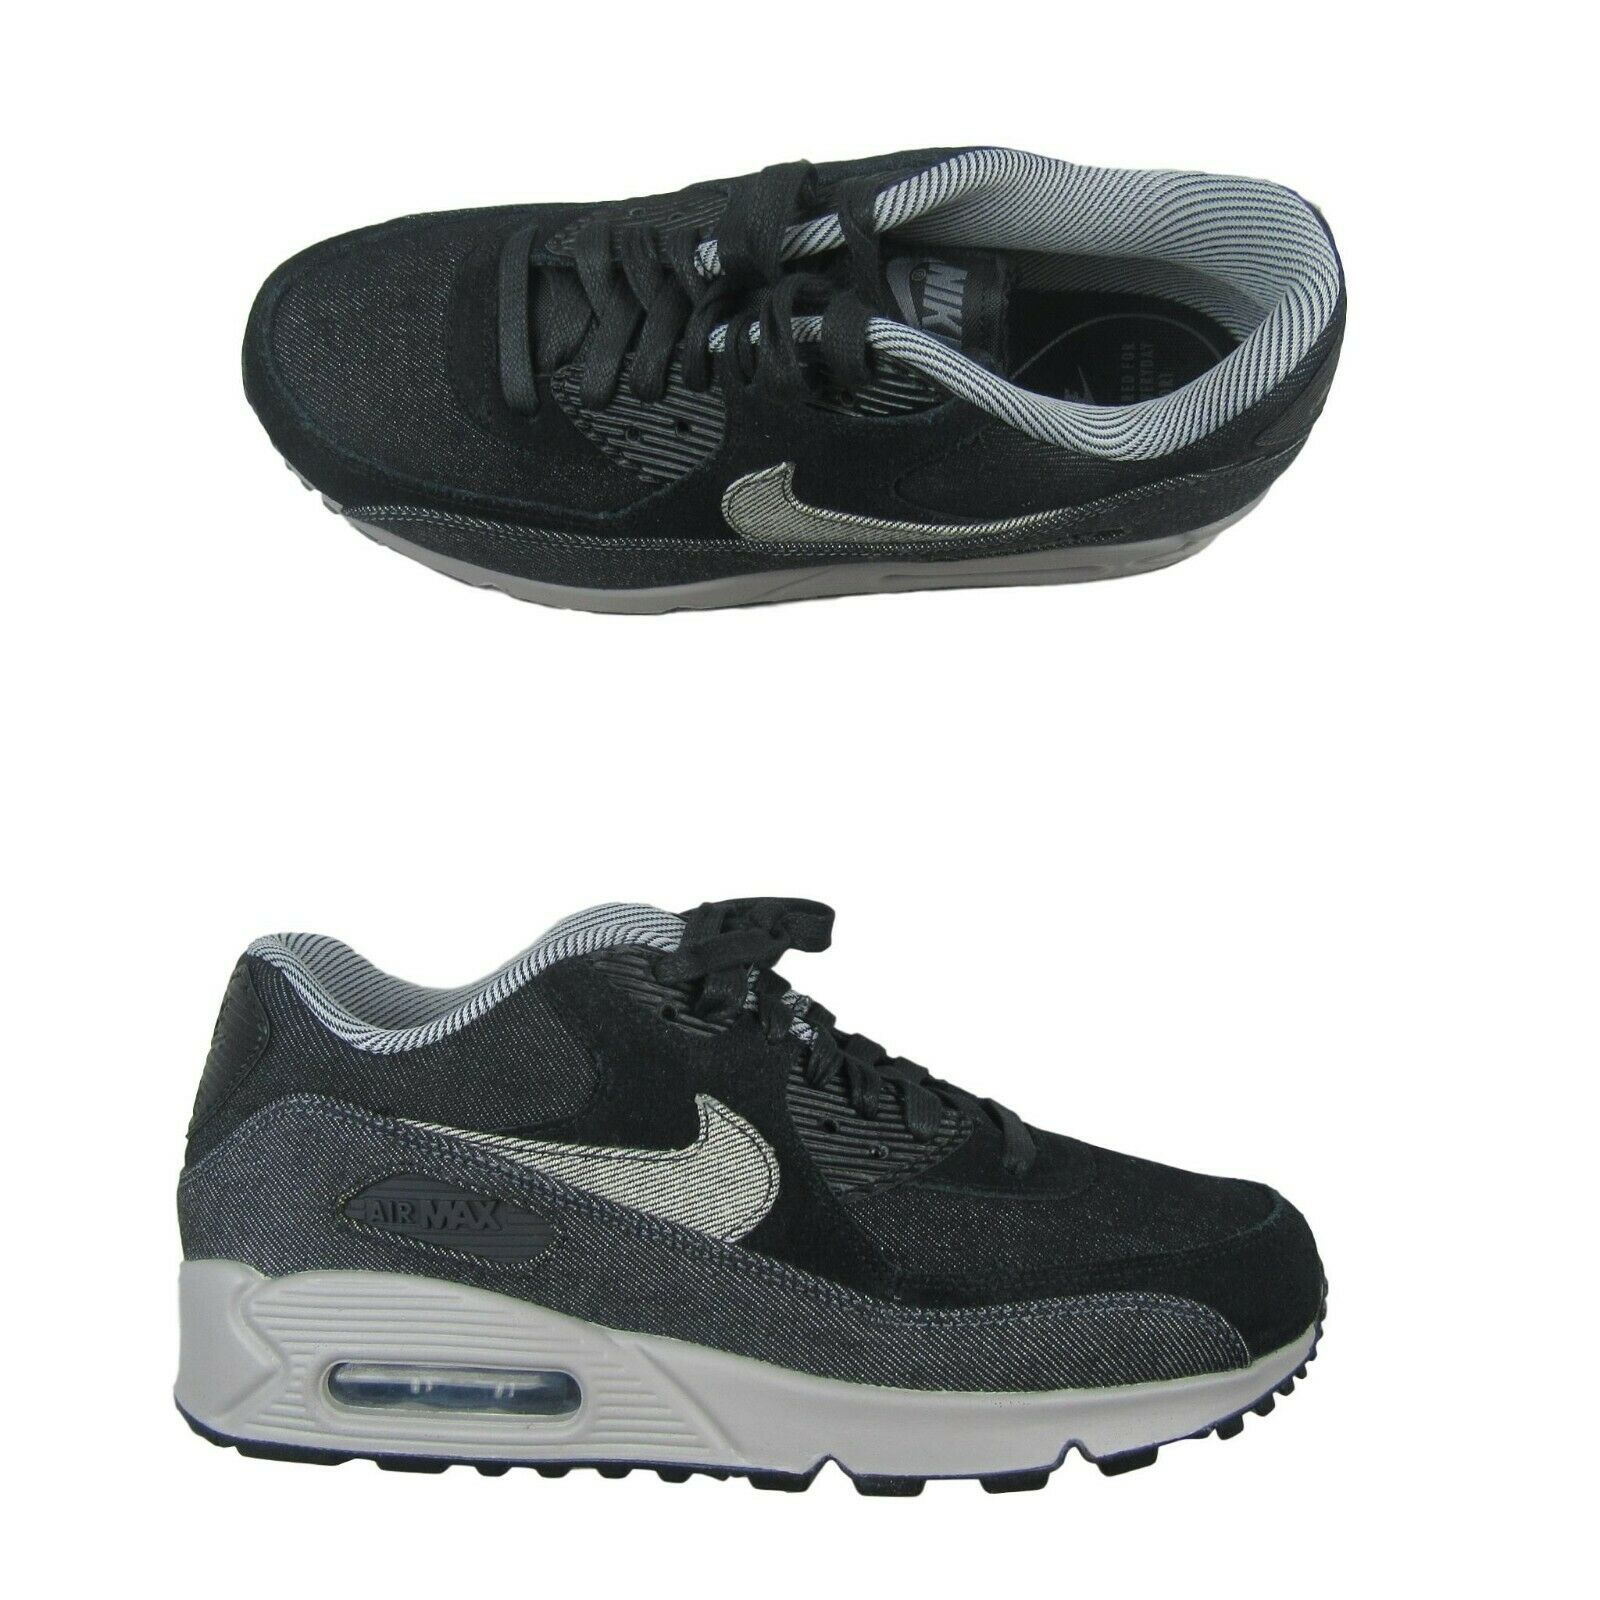 ddc812061 Nike Air Max 90 SE Running Shoes Womens Size 8.5 Black Grey 881105 ...